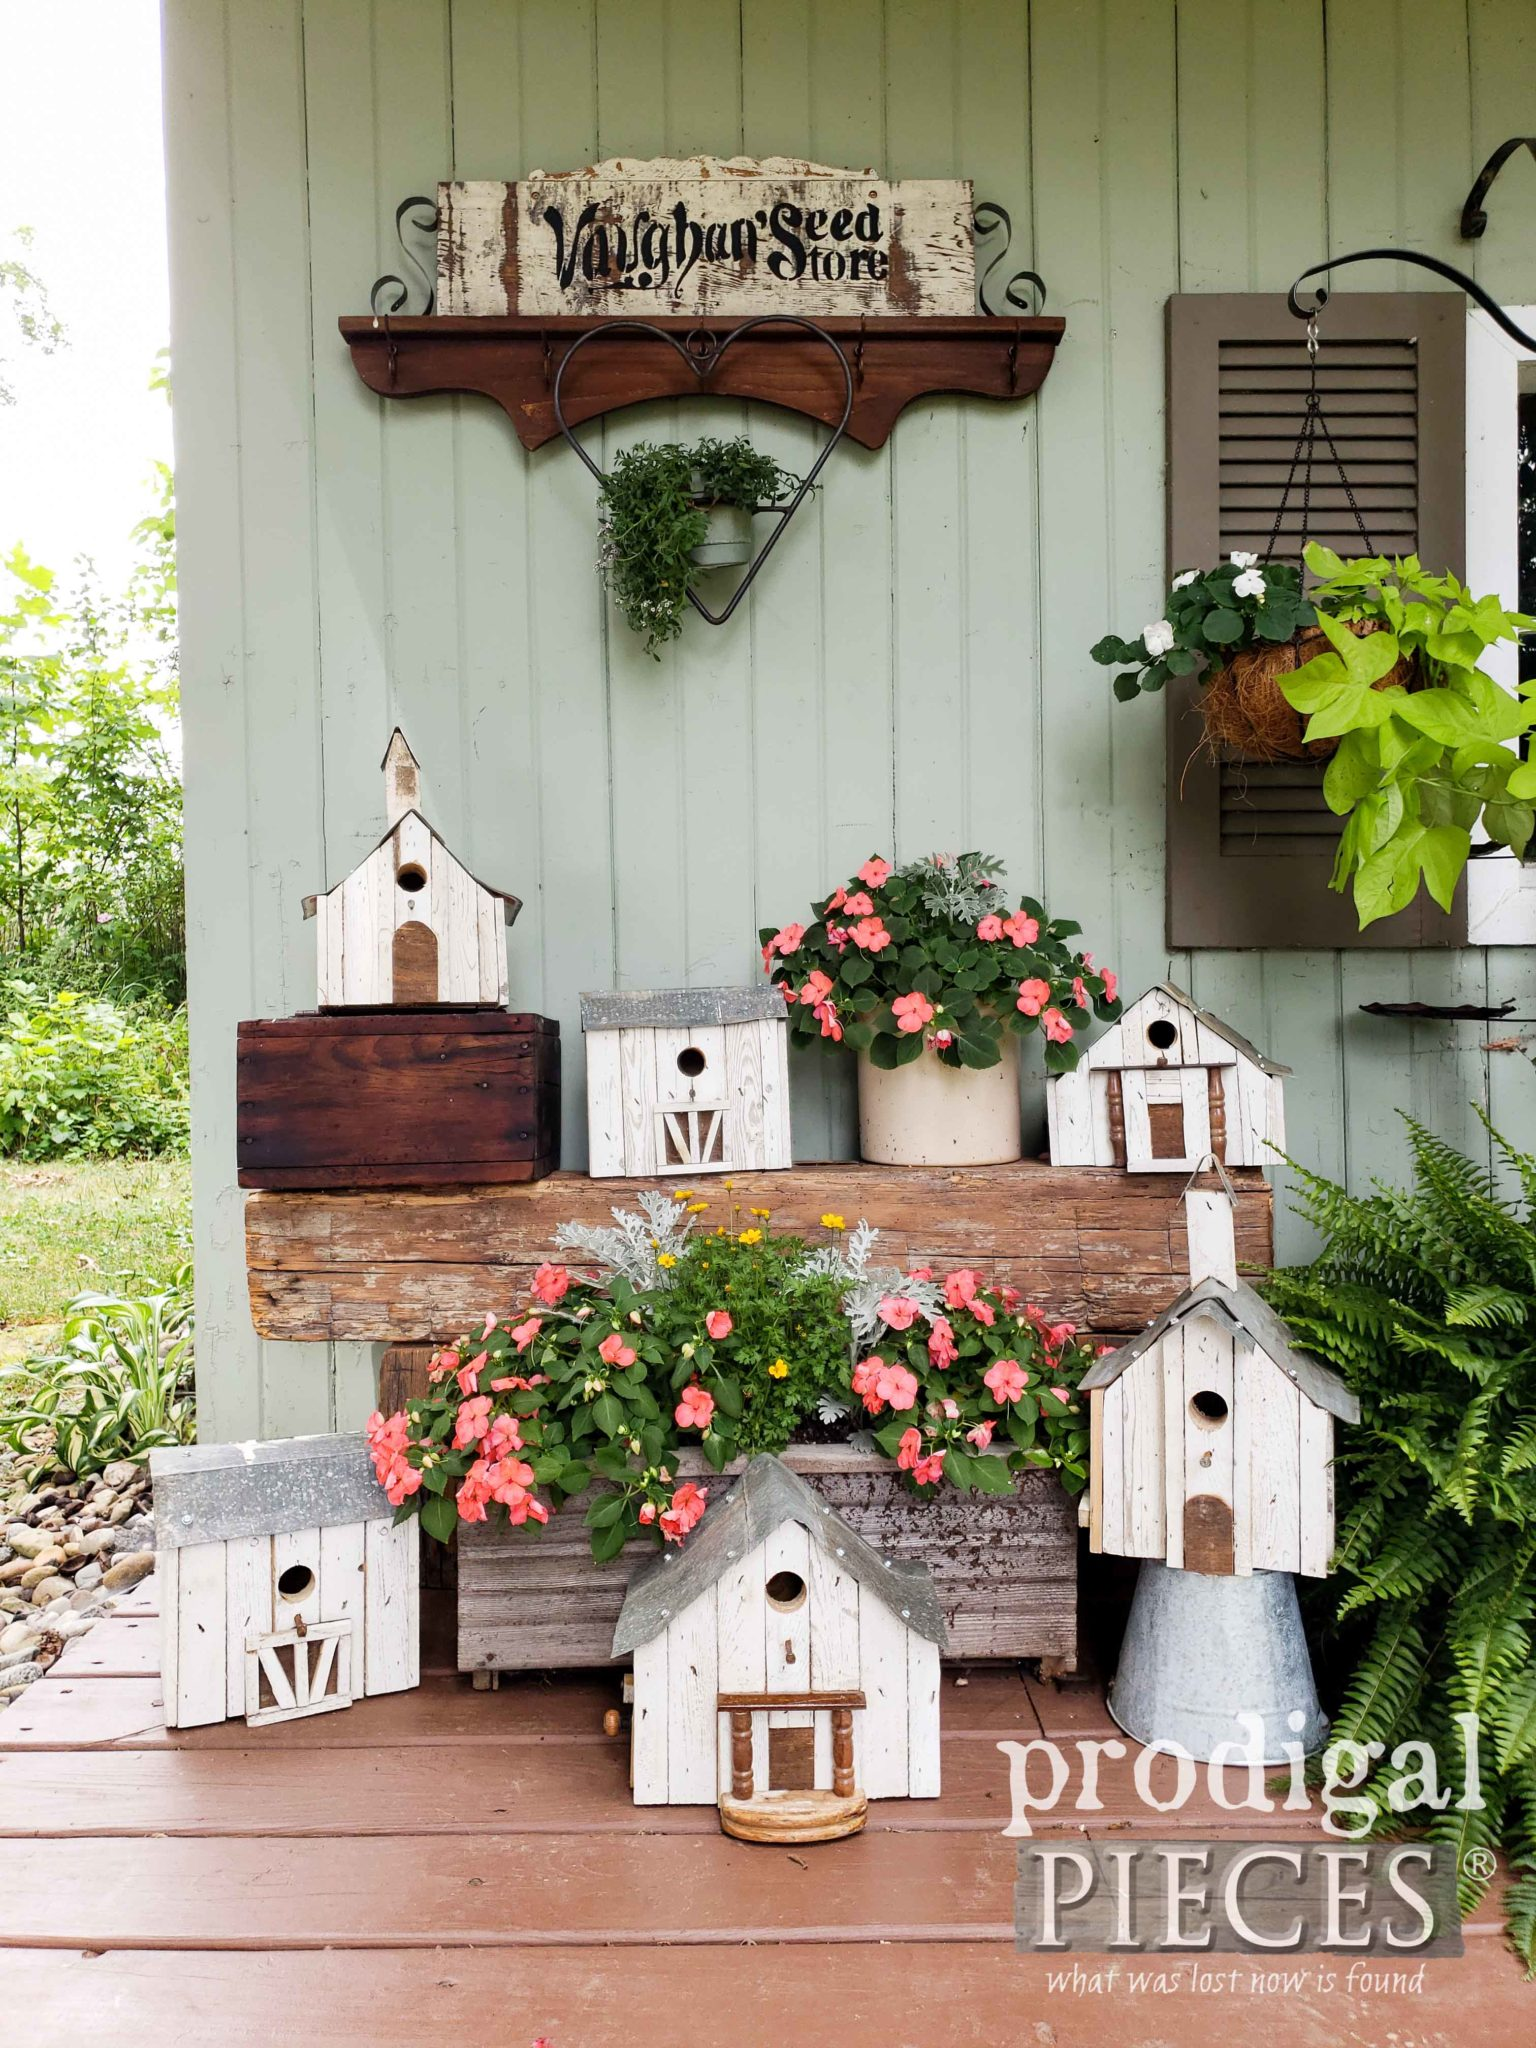 Handmade Repurposed Salvaged Junk Birdhouse Collection by Larissa of Prodigal Pieces | prodigalpieces.com